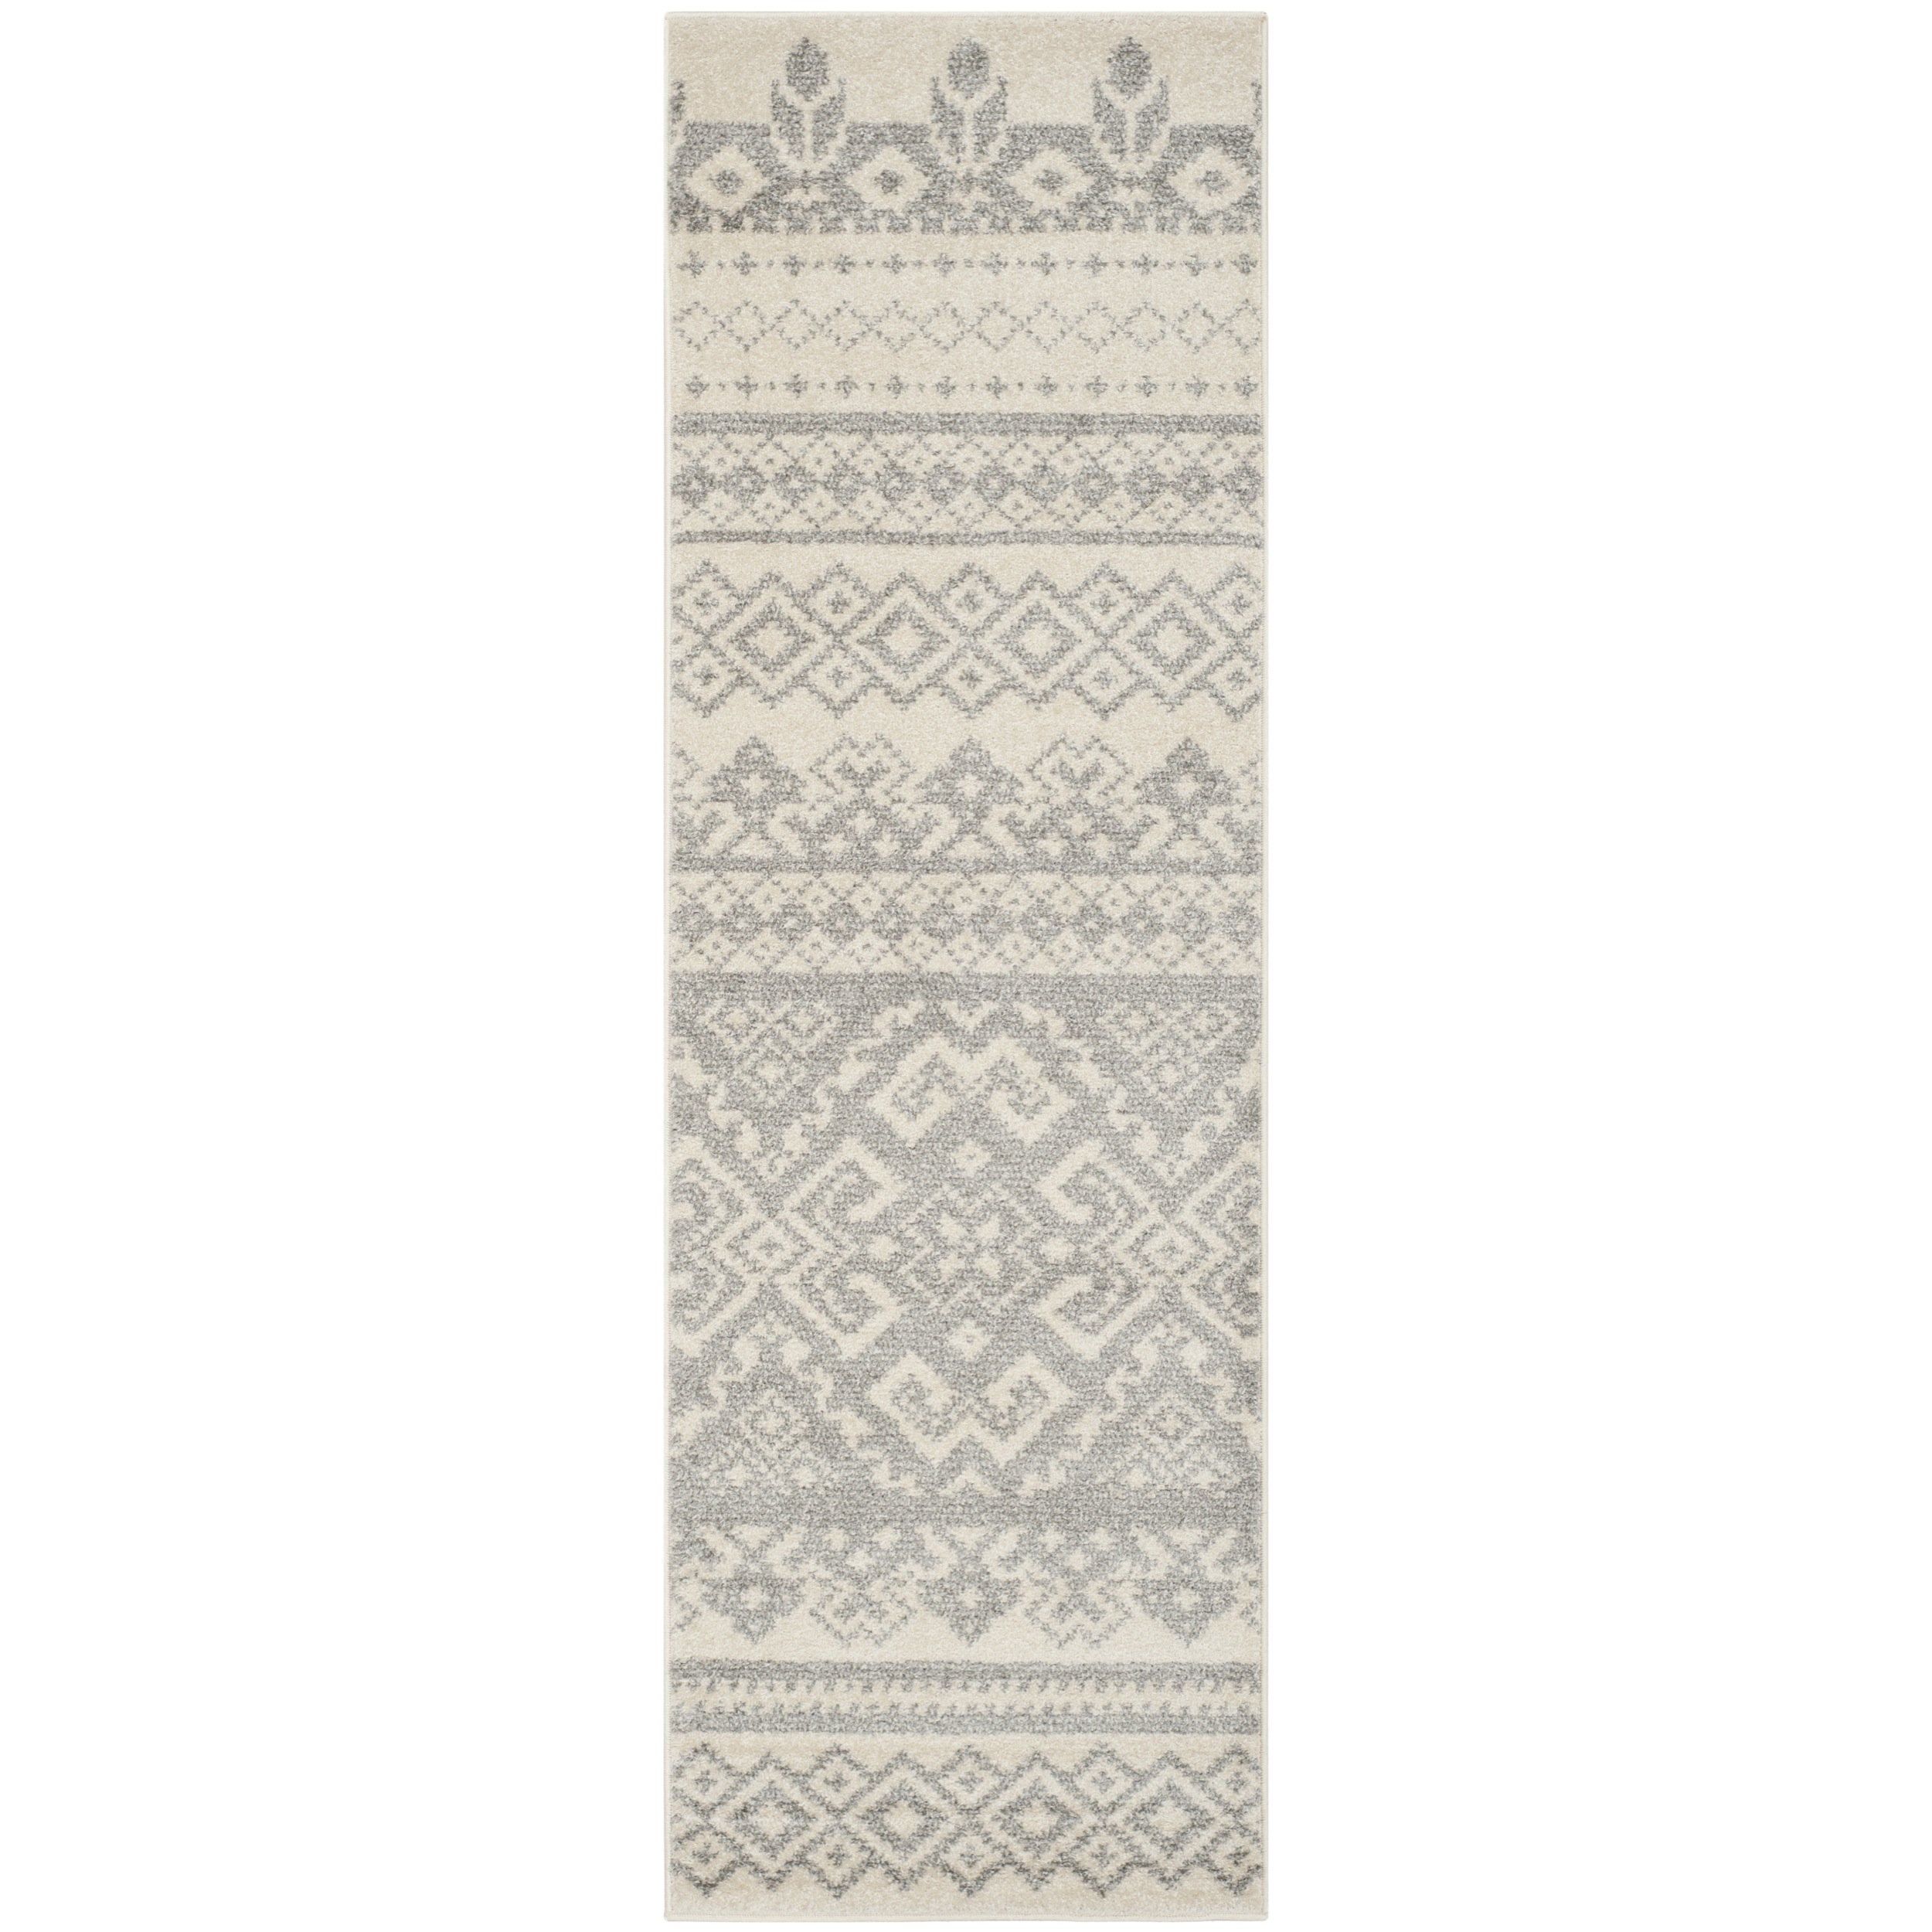 Safavieh Adirondack Collection ADR107B Ivory and Silver Rustic Bohemian Runner (2'6'' x 6')